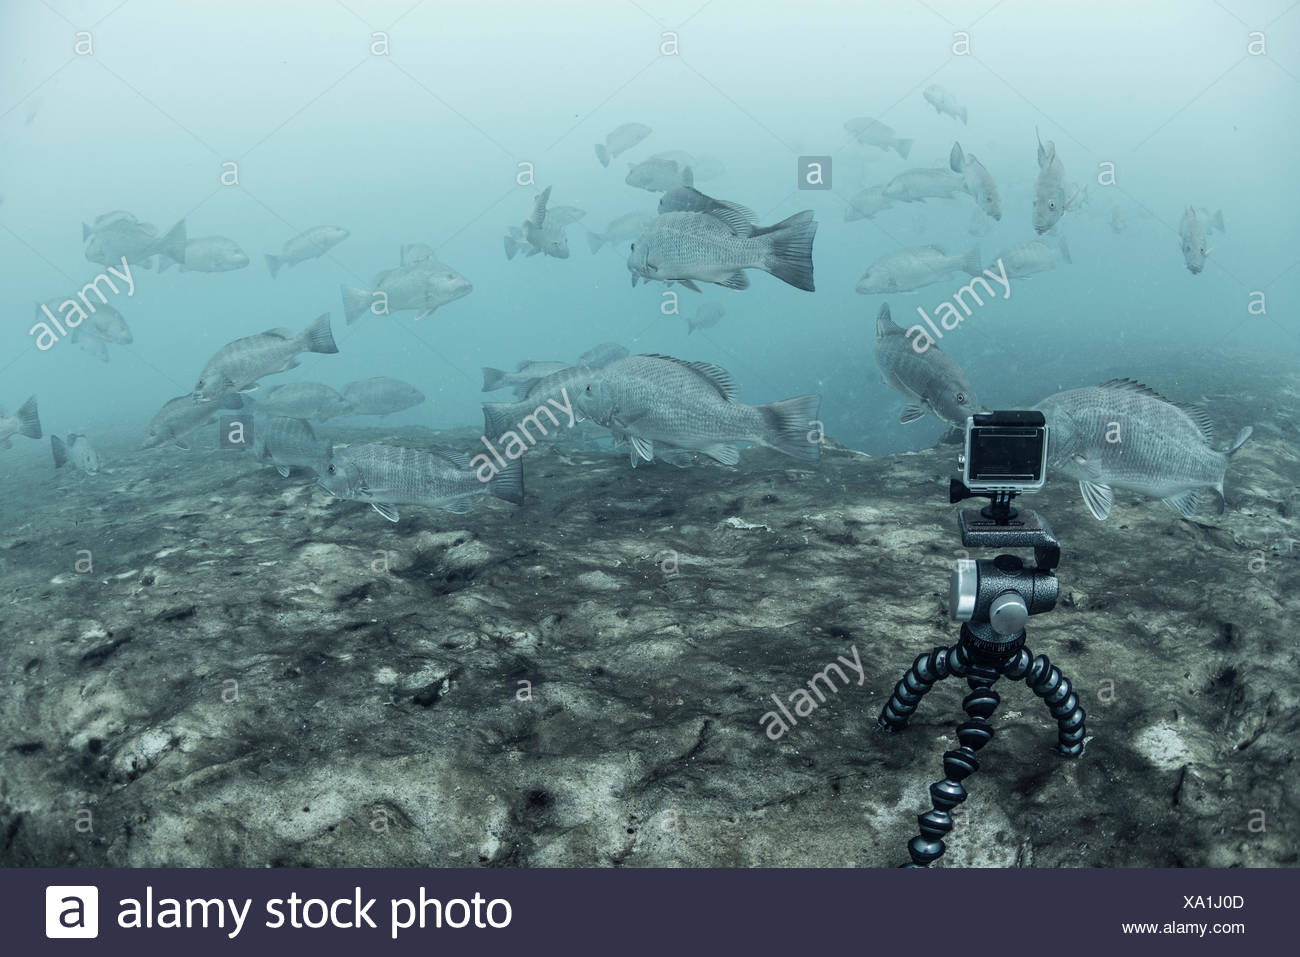 Underwater camera on tripod filming school of cubera snapper, Sian Kaan biosphere reserve, Quintana Roo, Mexico - Stock Image